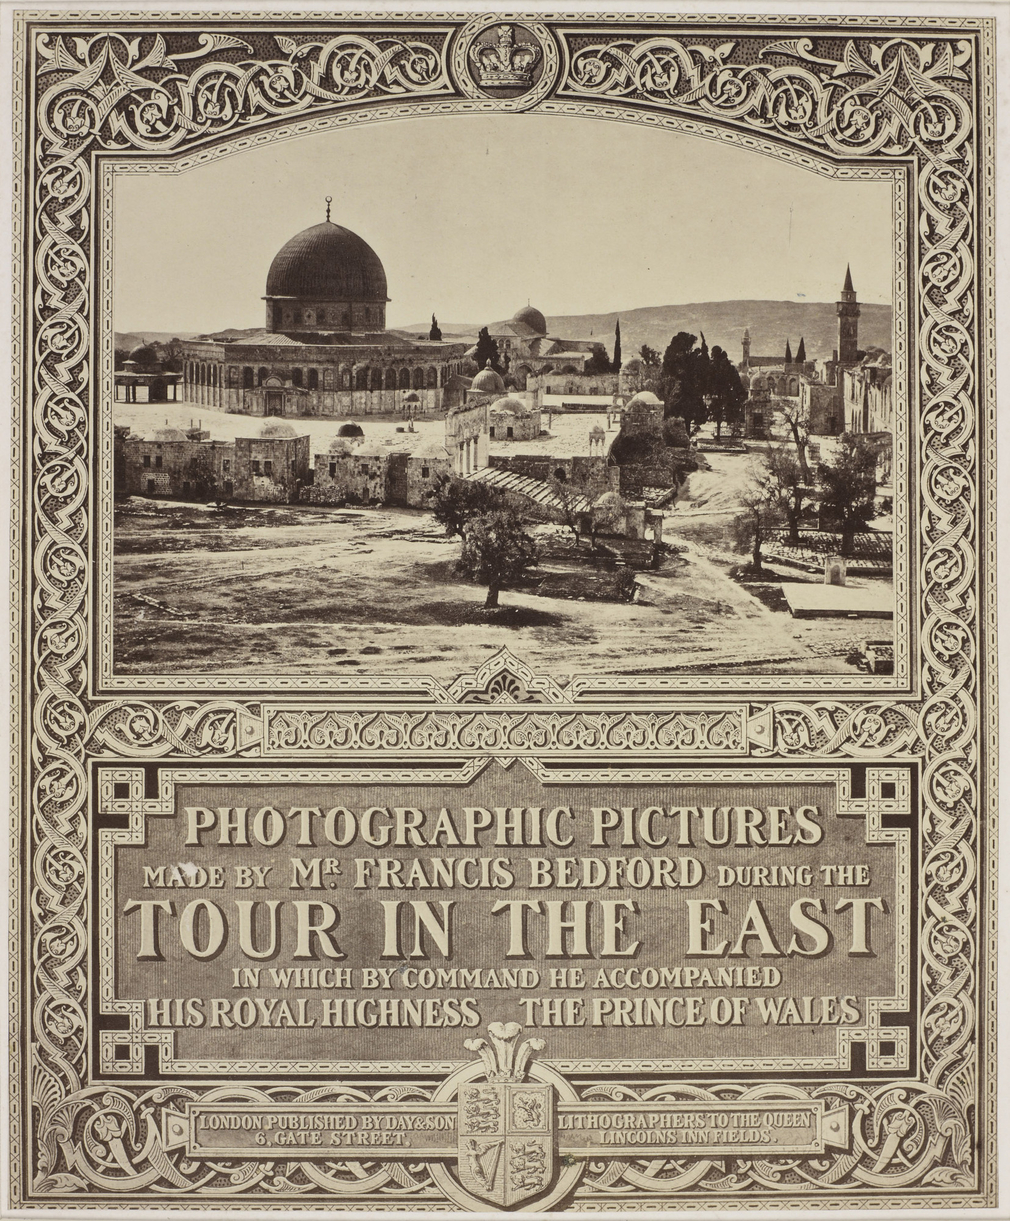 Photographic title page from Francis Bedford's Middle East views of 1862. Includes a copy of Bedford's view of the 'Mosque of Omar from the Governor's House' in Jerusalem (see RCIN 2700932).